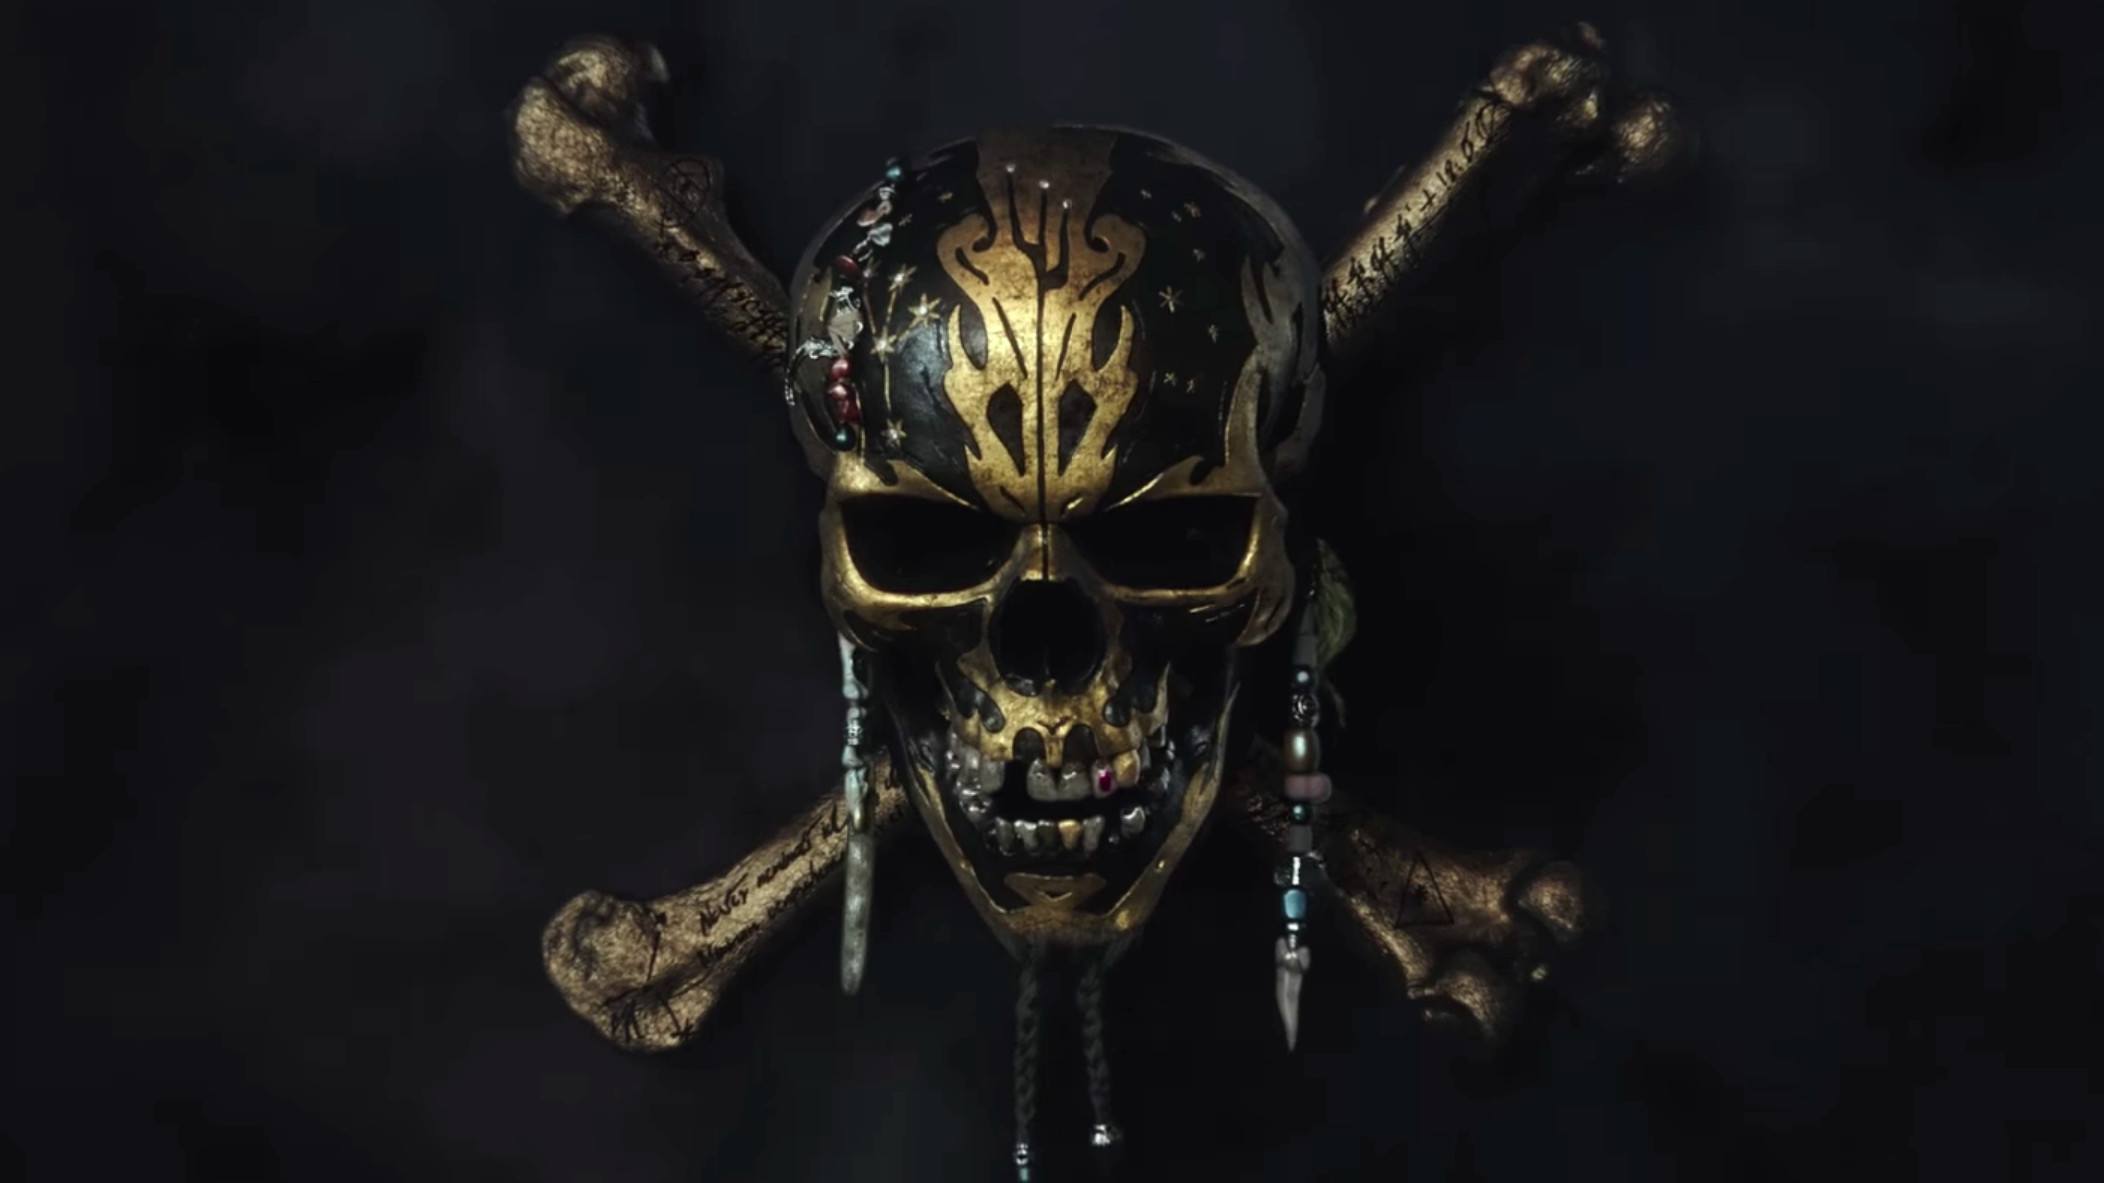 2104x1183 Pirates Of The Caribbean Wallpaper HD 9 - 2104 X 1183